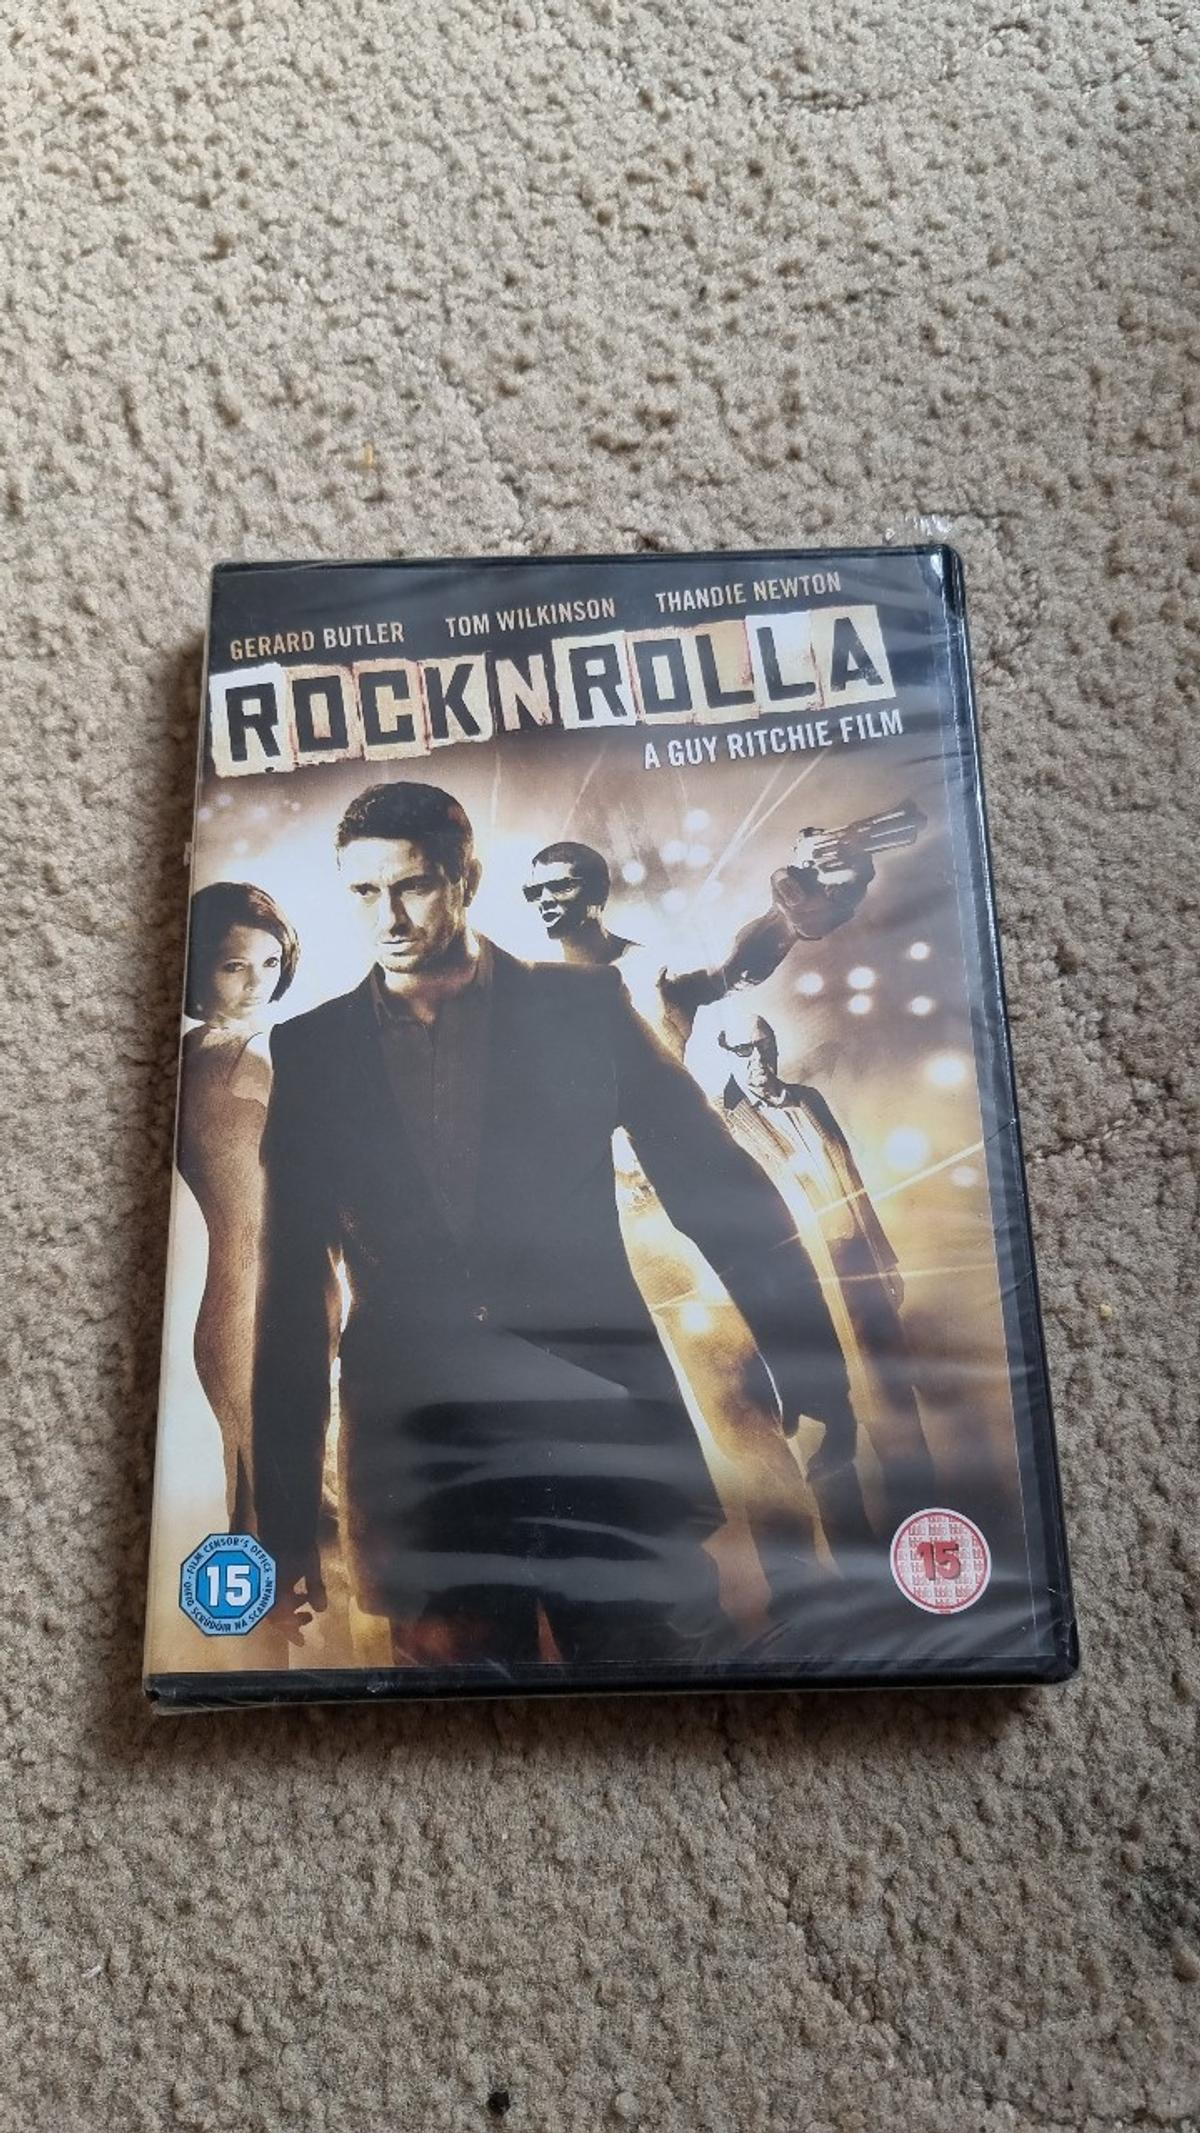 rocknrolla dvd dvds in good condition used any discs that are 20p each are also mix and match at 10 for £1.50 please look at my other items for sale as have a wide variety of dvds and games for sale sorry but I do not accept PayPal or shpock wallet as payment and unfortunately I do not post due to working hours collection only